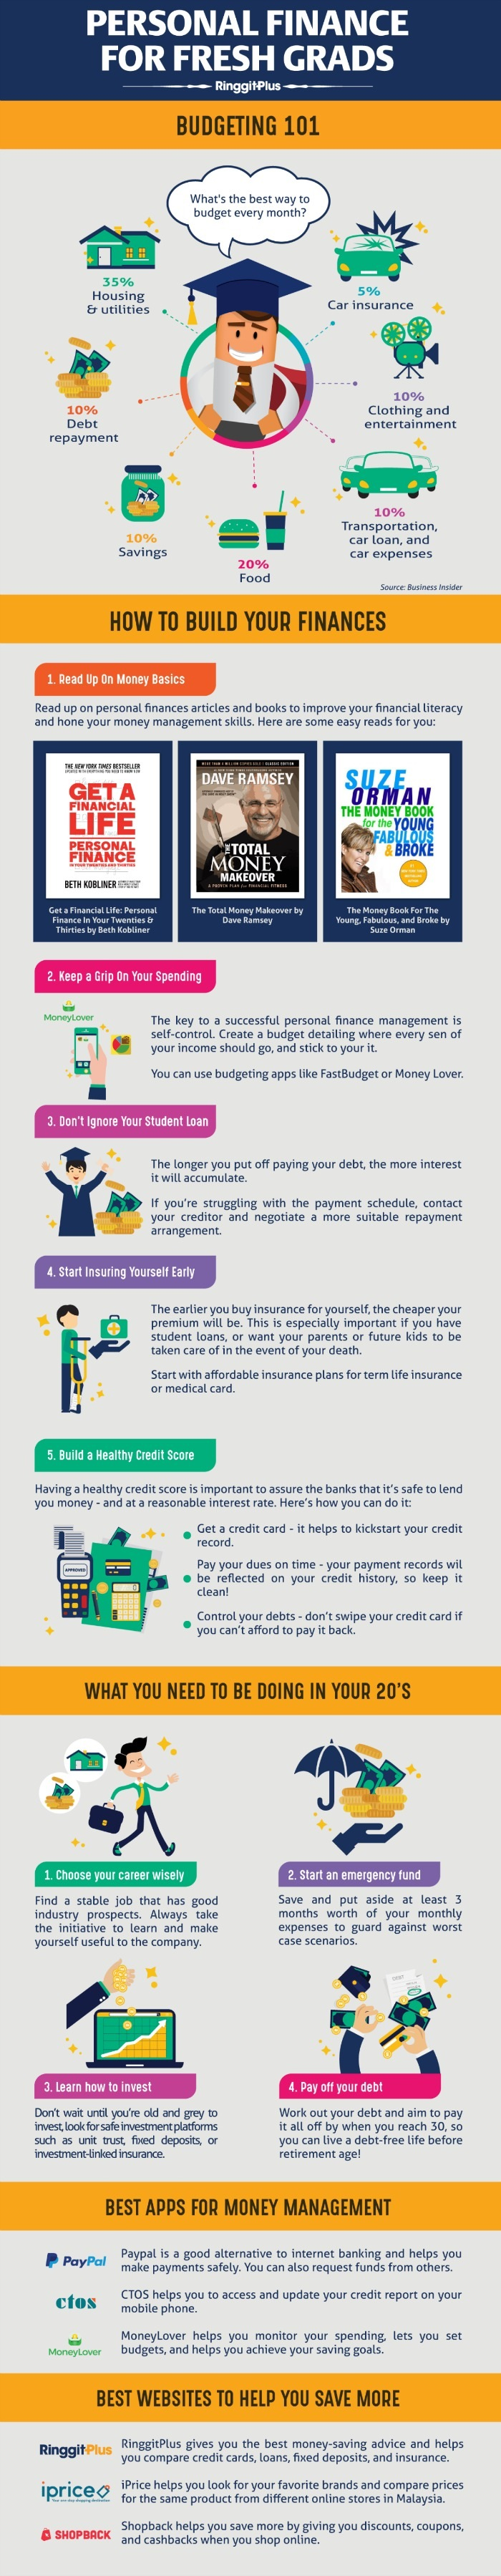 the ultimate financial tips for fresh grads ringgitplus com